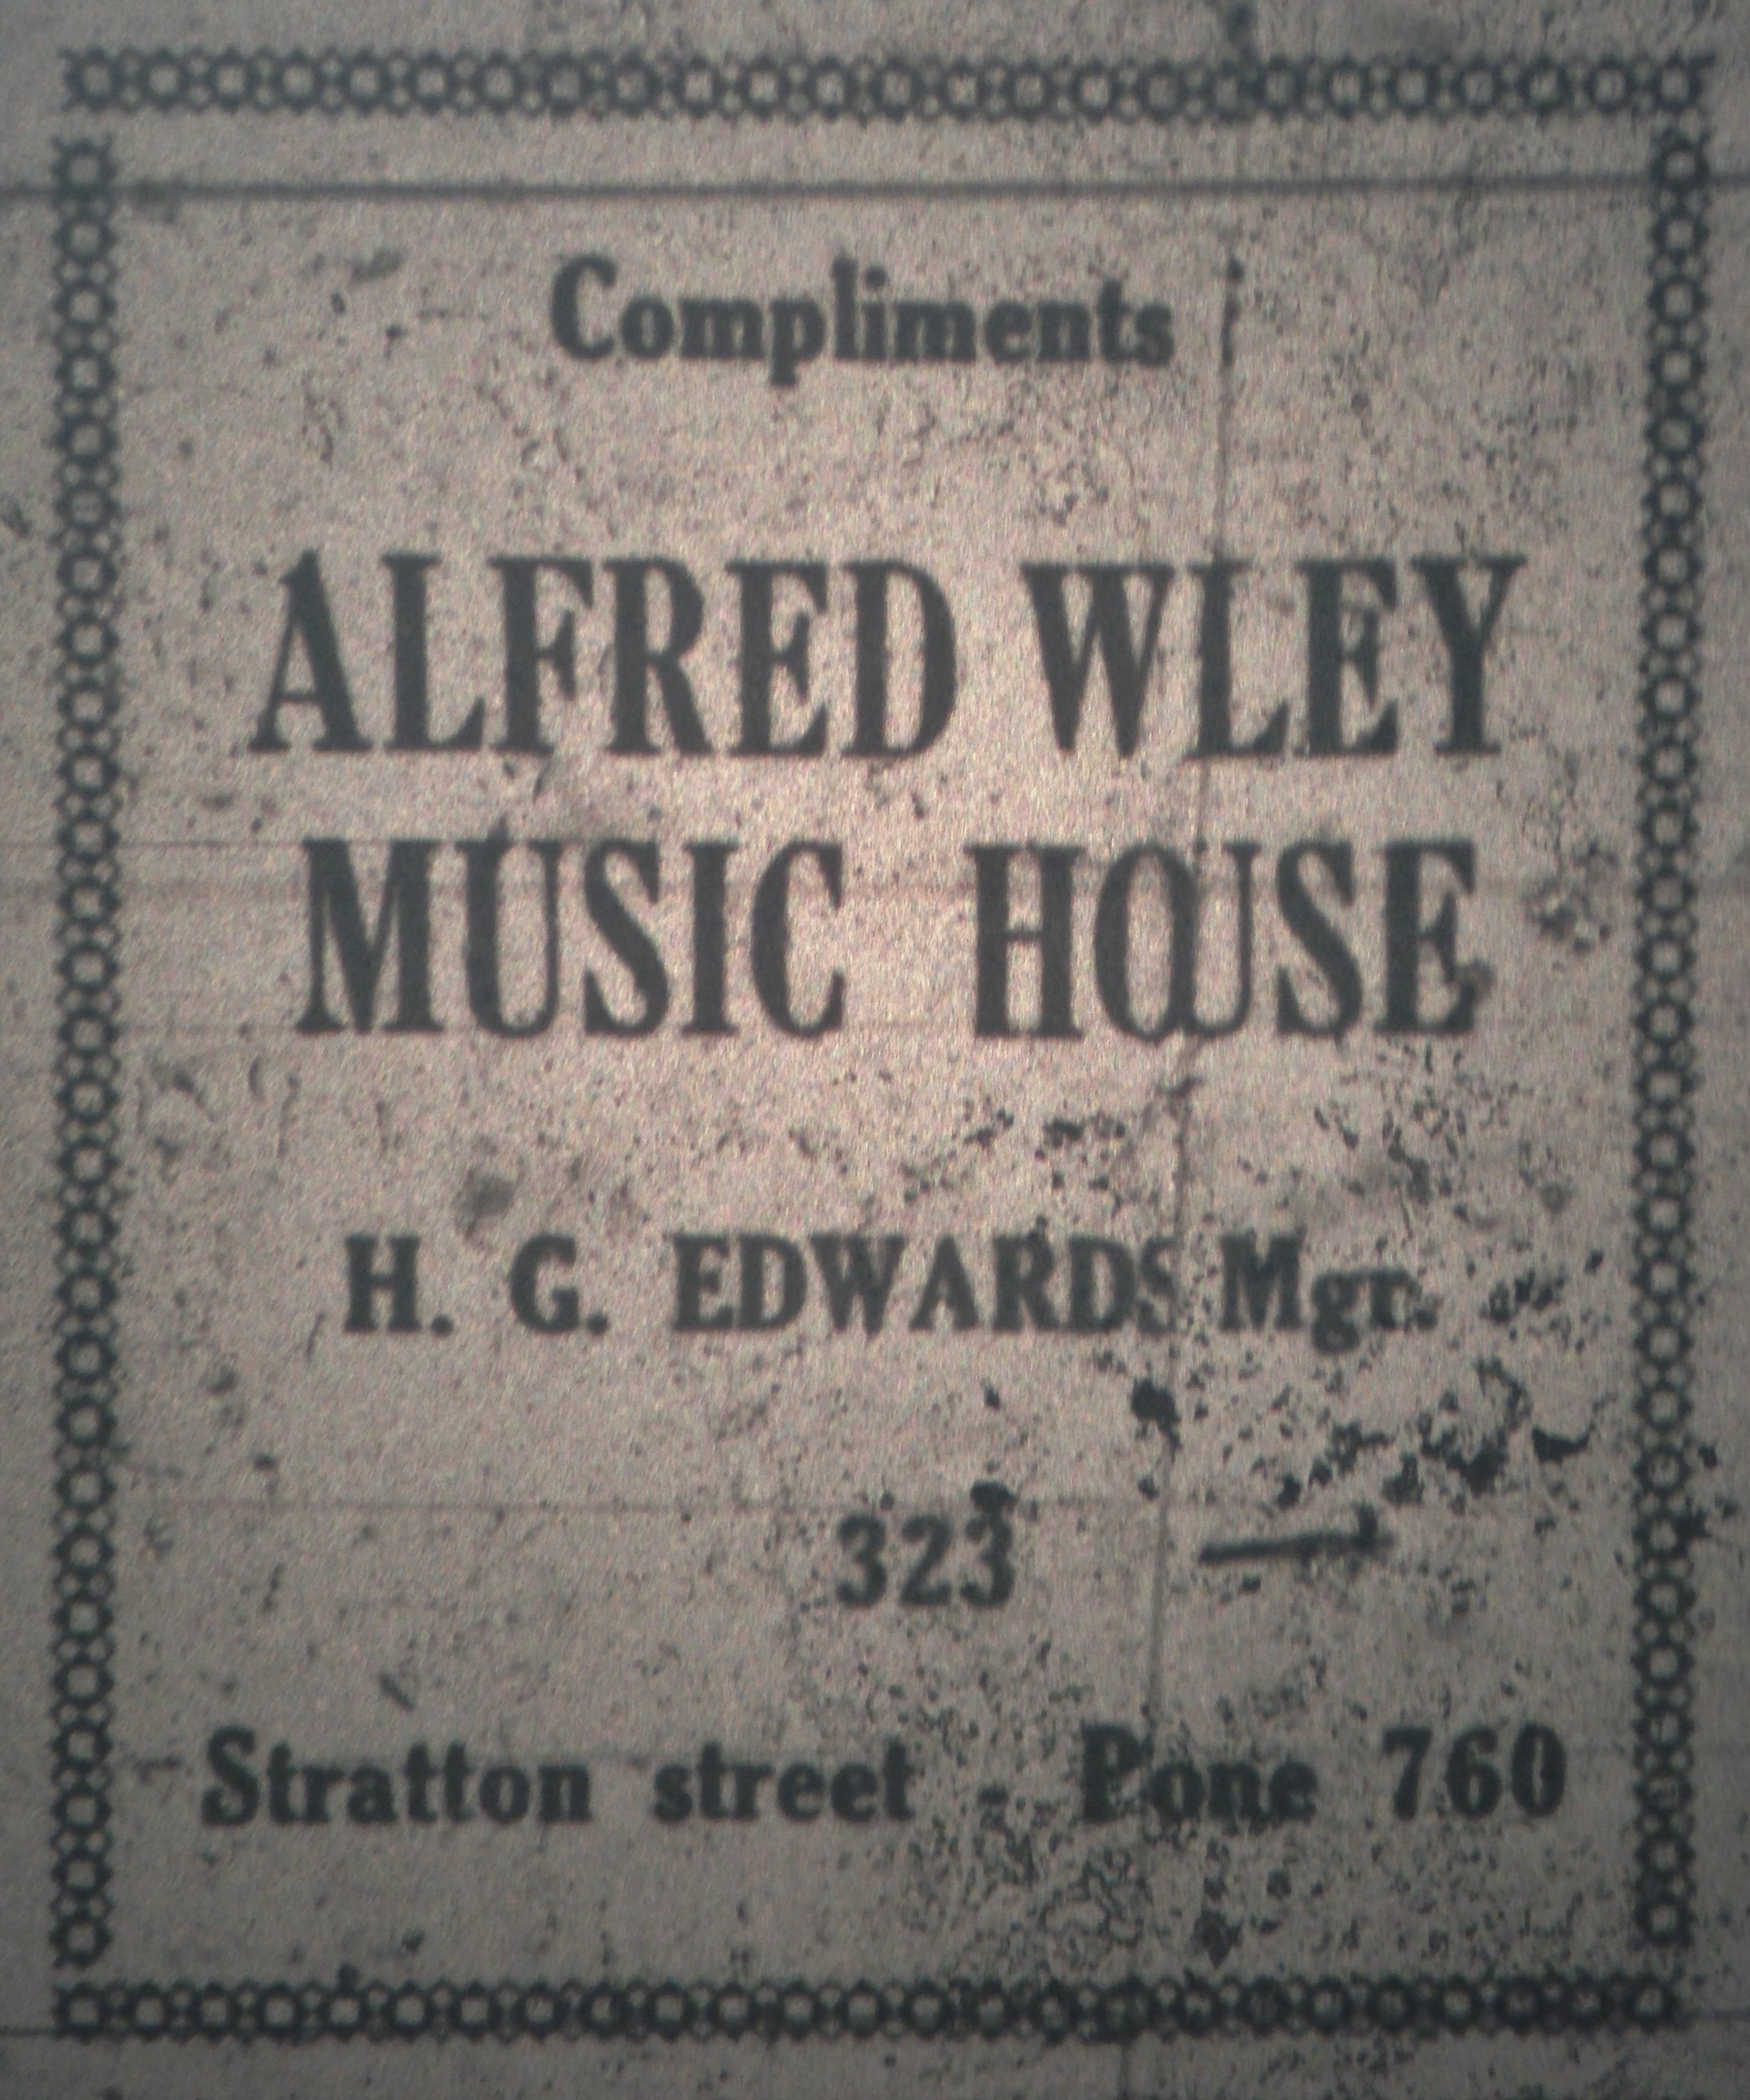 Alfred Wiley Music House Ad LB 10.24.1924.JPG